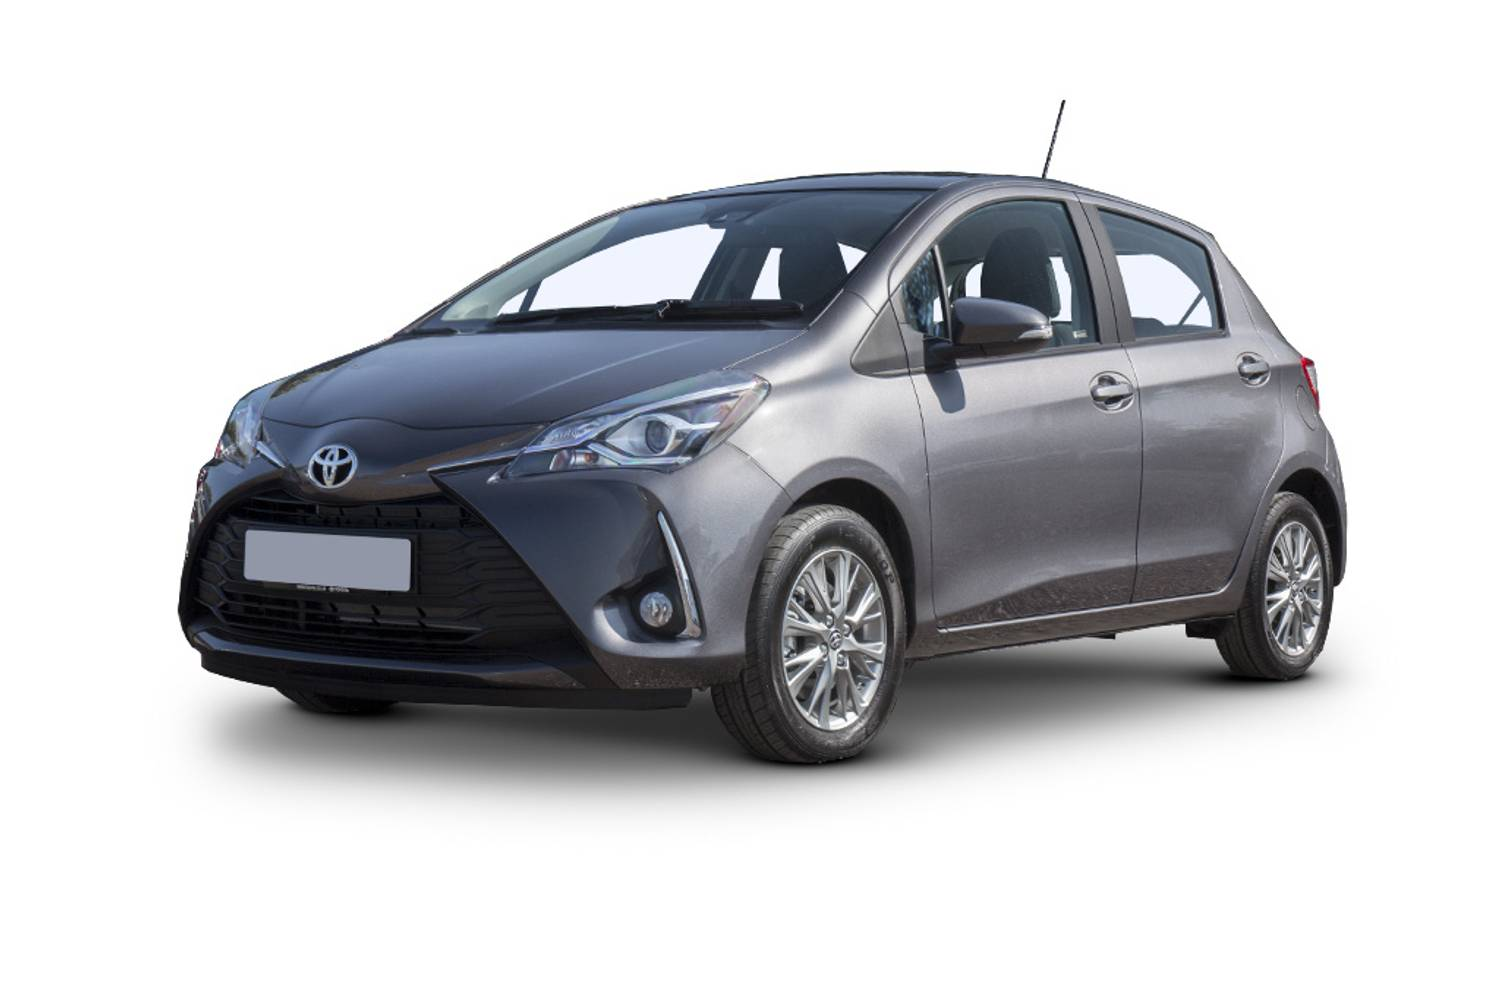 new toyota yaris hatchback 1 5 hybrid excel 5 door cvt pan roof 2017 for sale. Black Bedroom Furniture Sets. Home Design Ideas